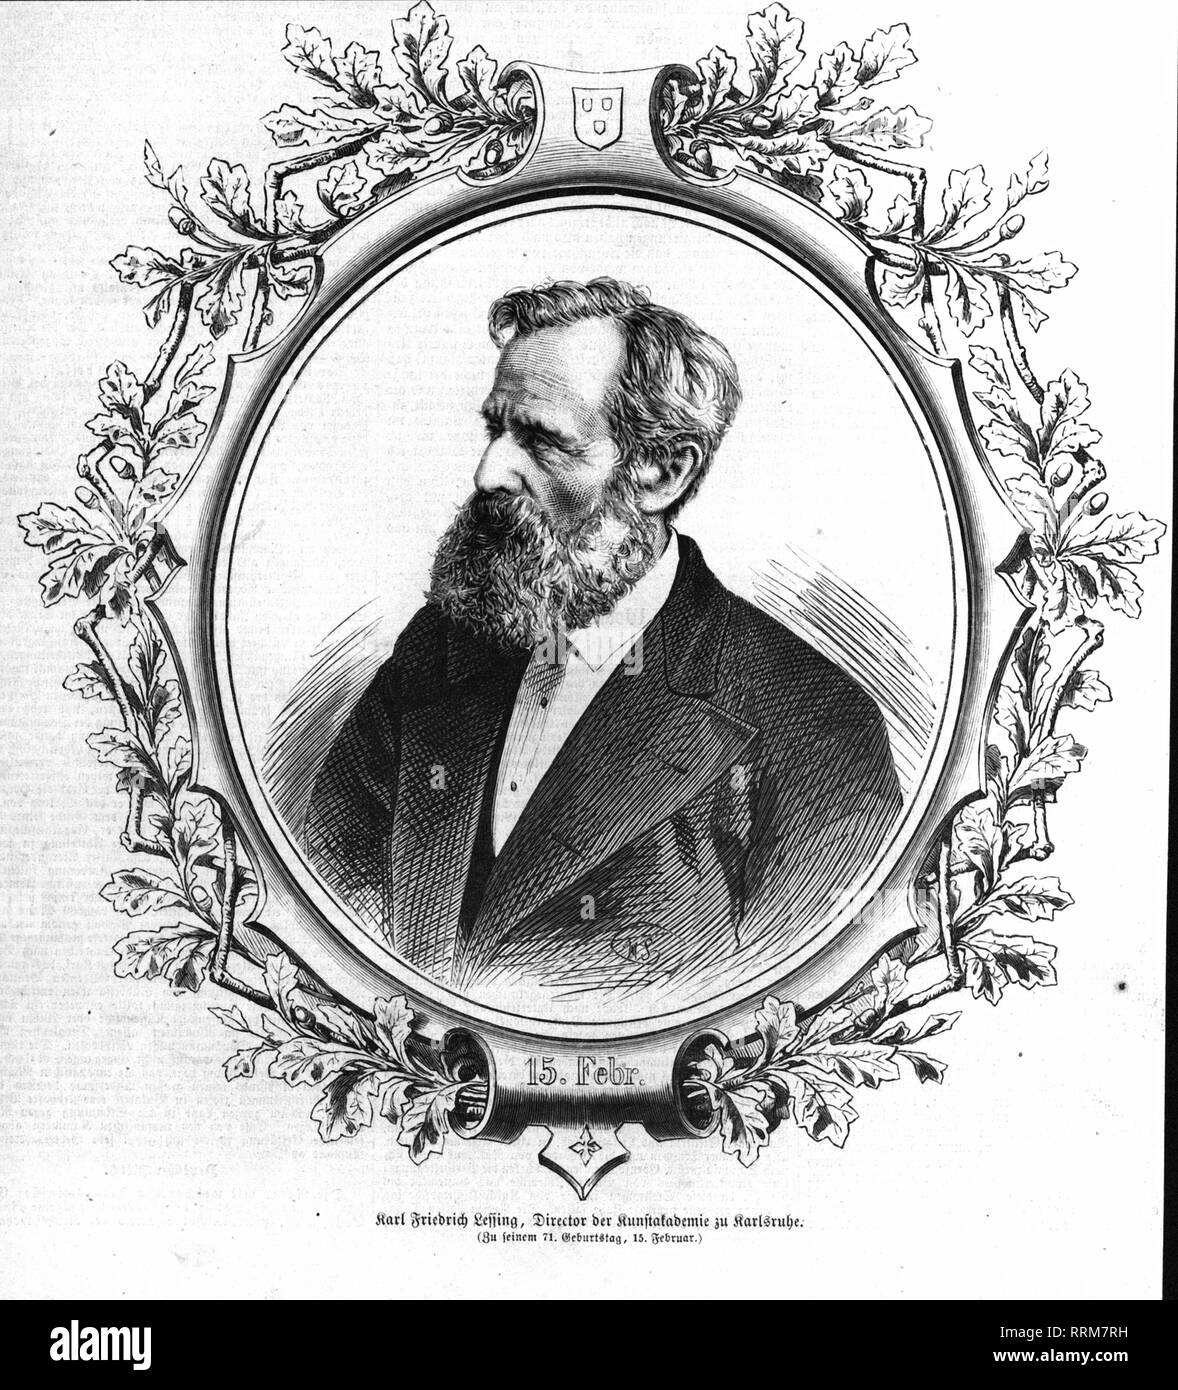 Lessing, Carl Friedrich, 15.2.1808 - 4.6.1880, German painter, portrait, wood engraving, published in 1879, Additional-Rights-Clearance-Info-Not-Available - Stock Image